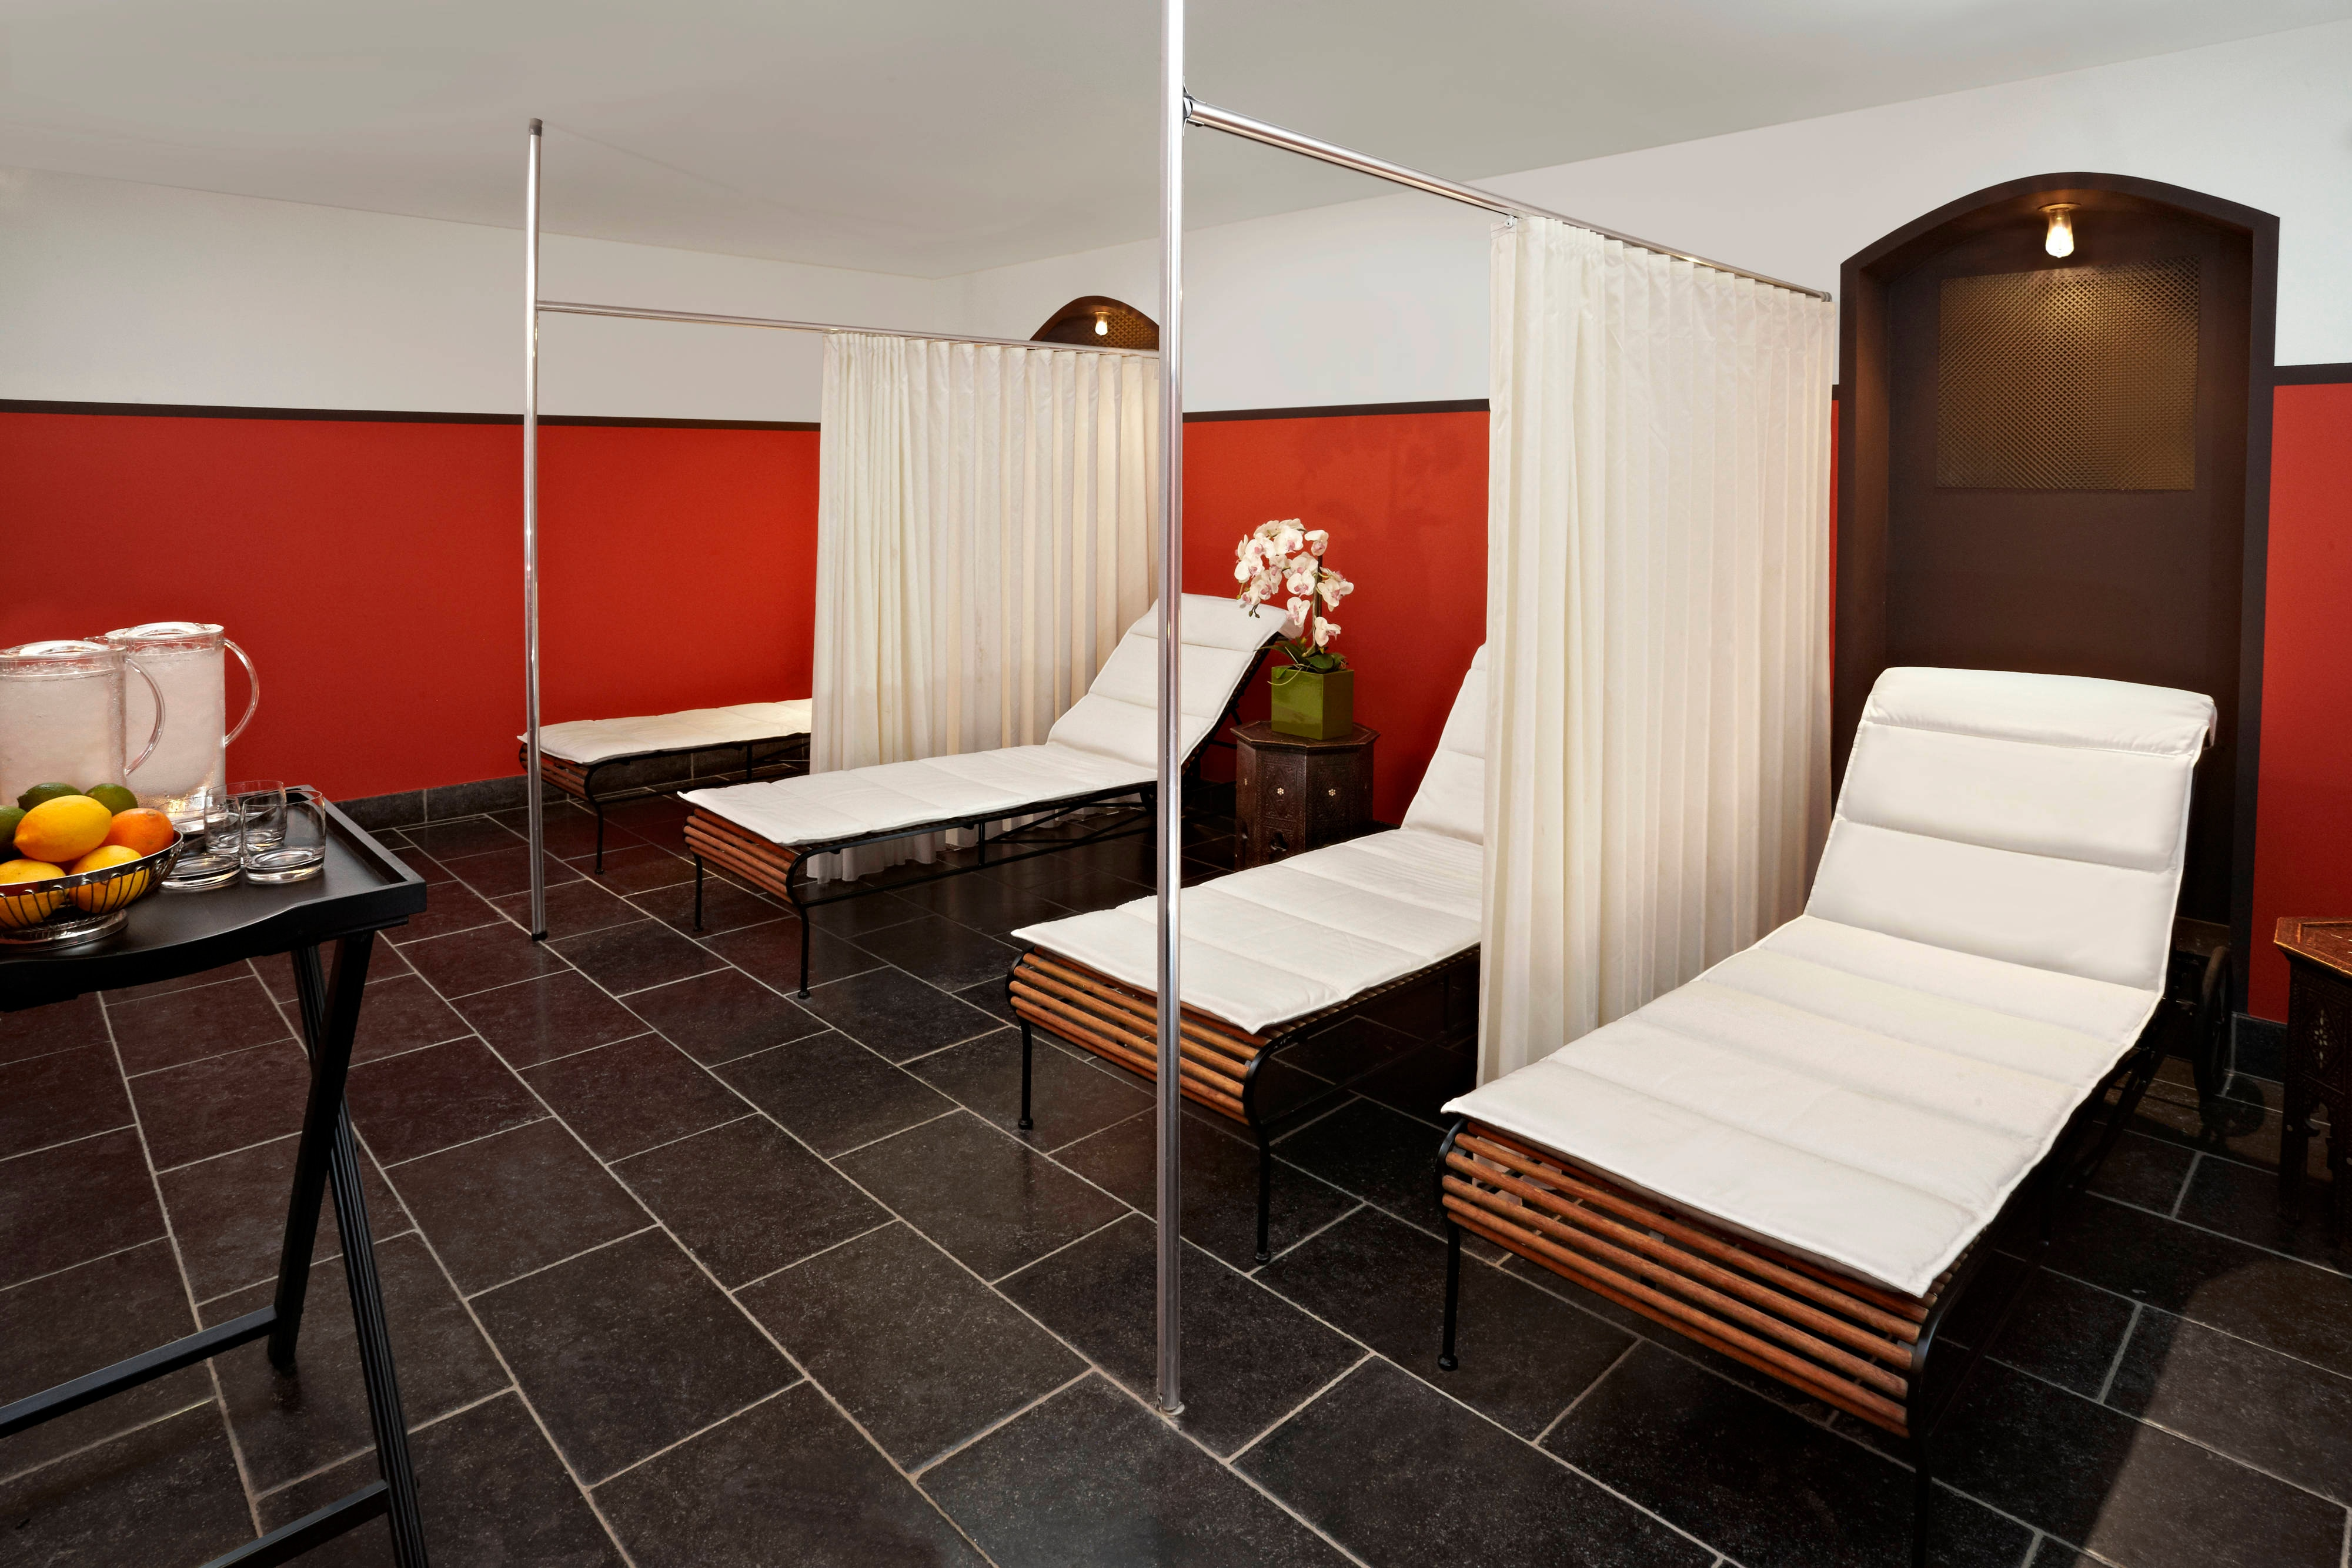 Health Club Des Indes - Spa